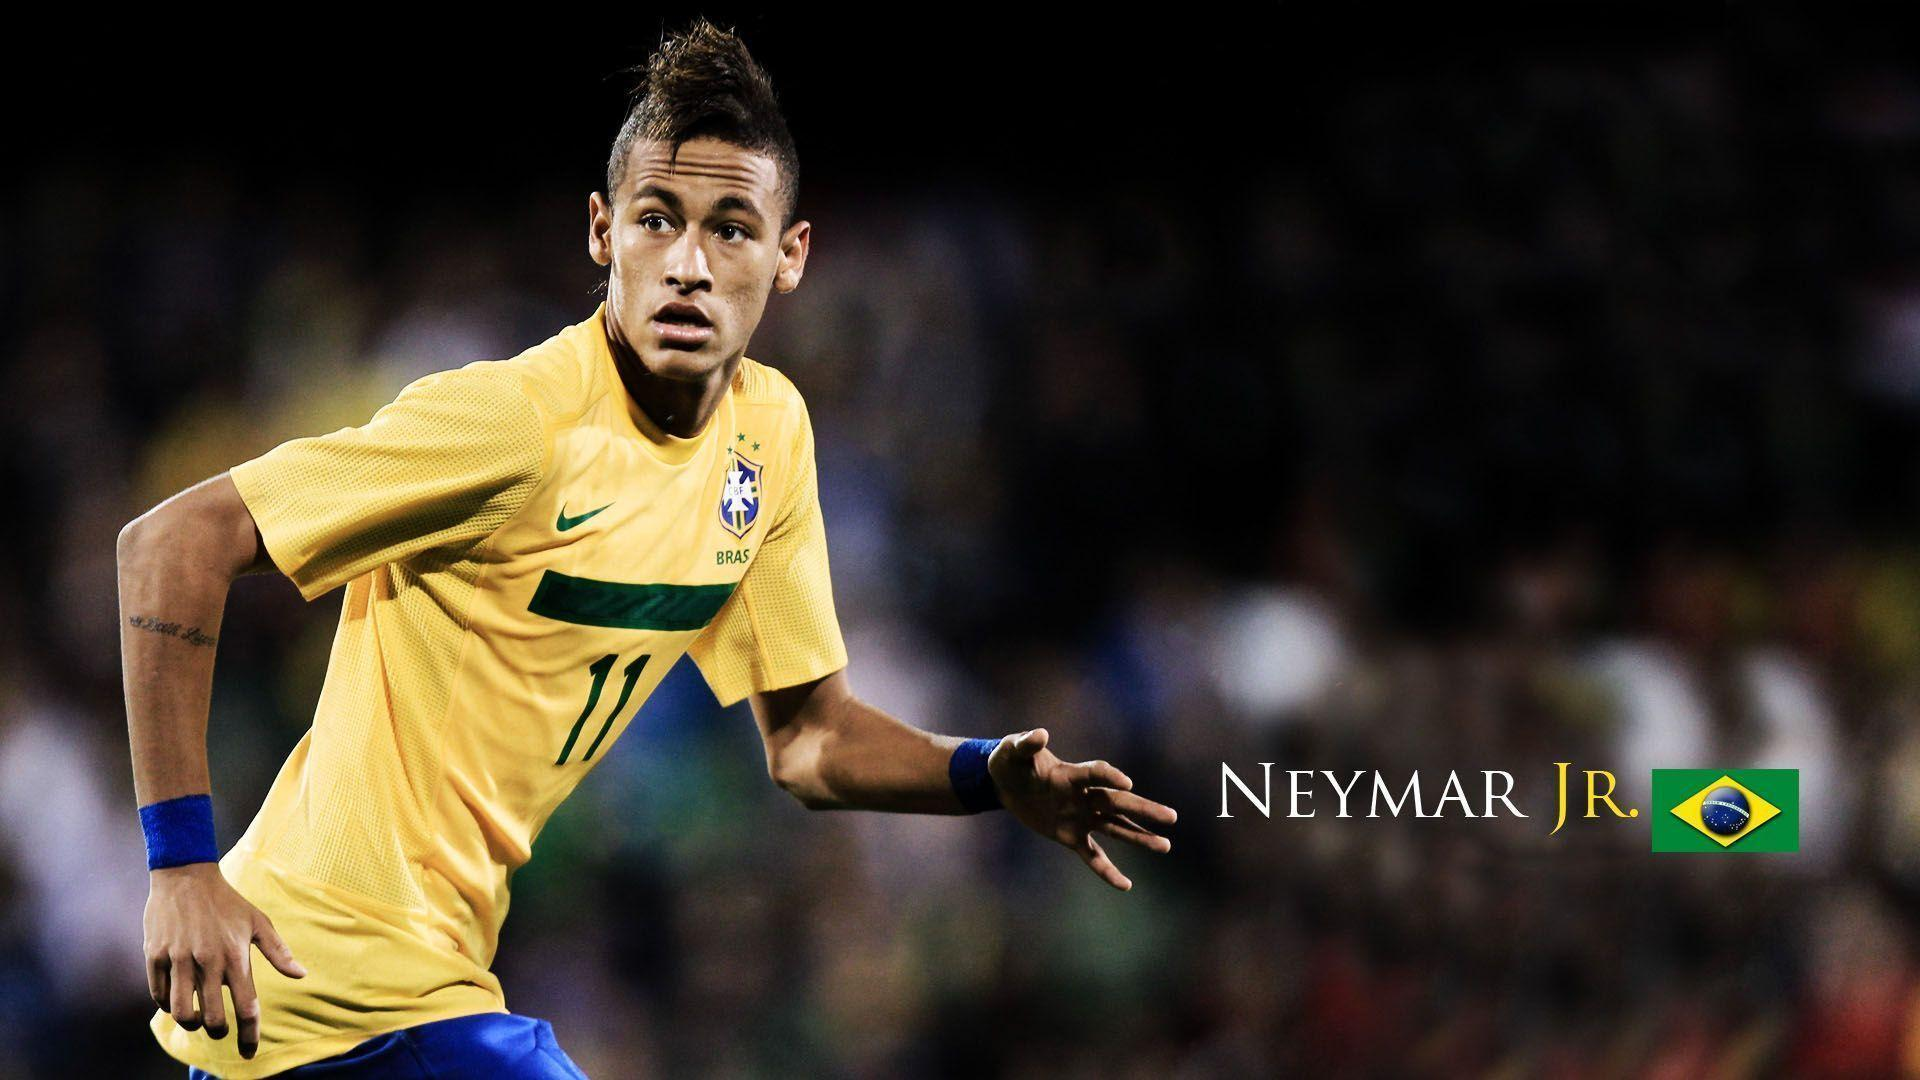 brazil neymar wallpaper 2014 - photo #20